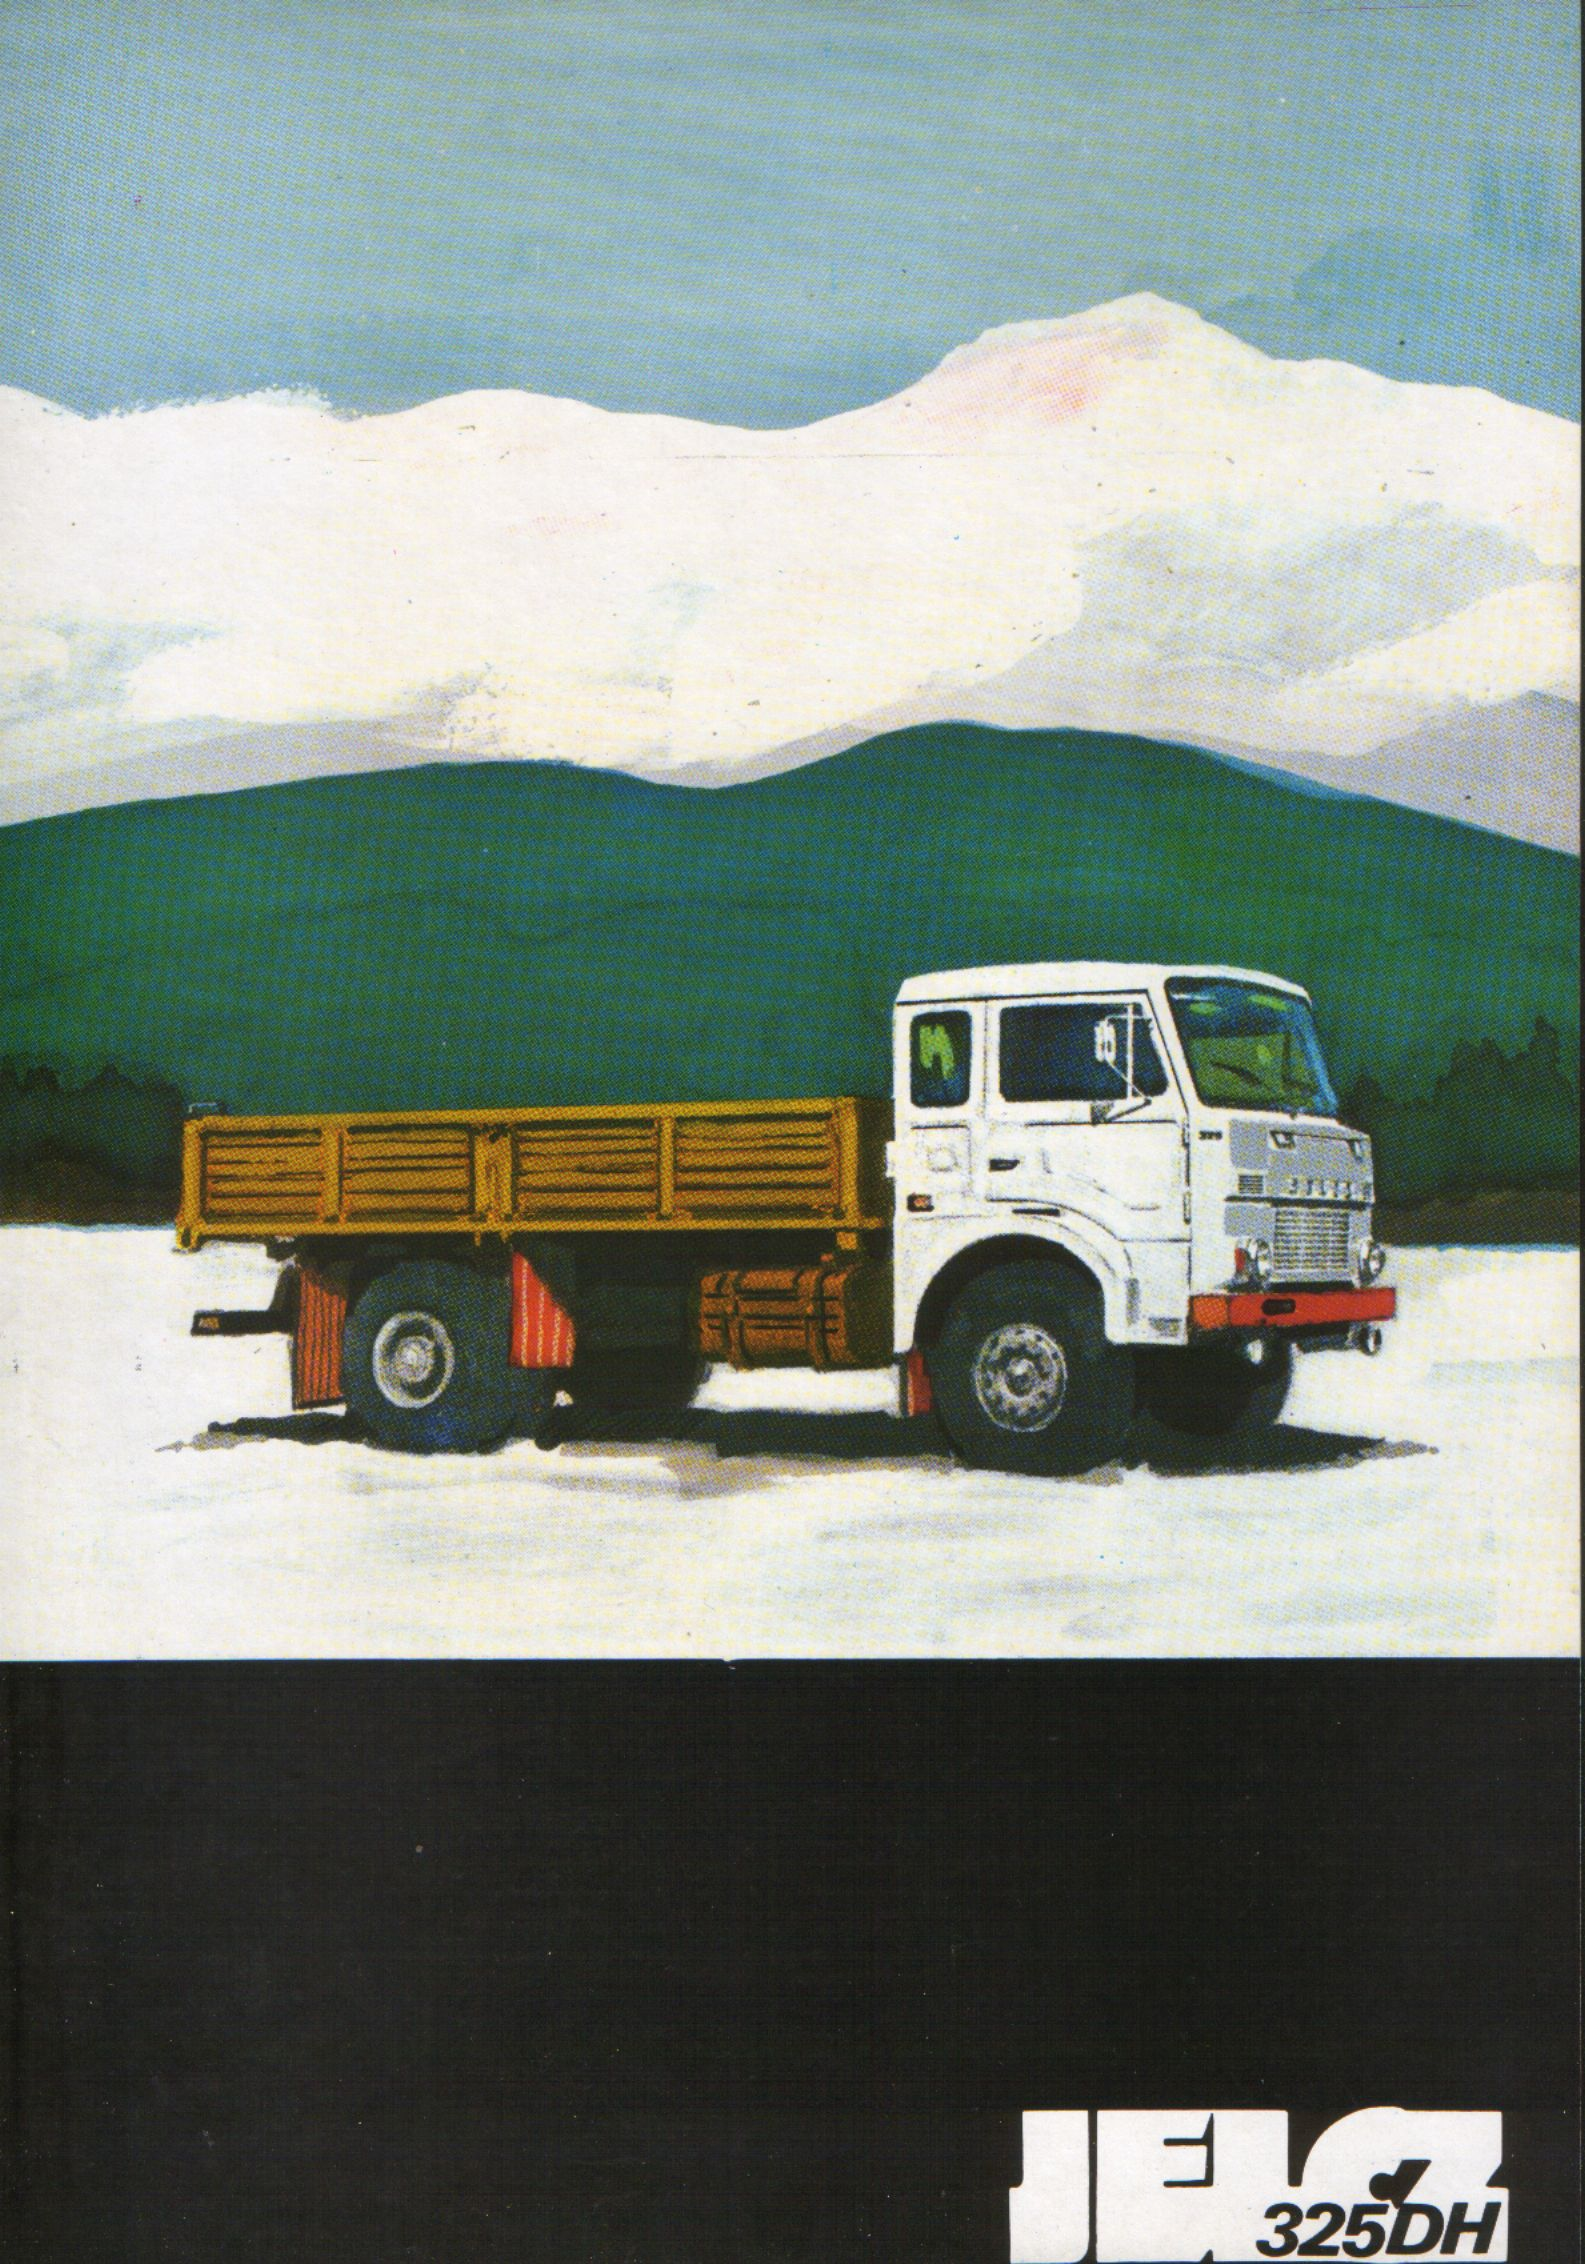 car trucks with Jelcz1995 on Photos Magirus Deutz Saturn 200d 20fs Kippsattel 1962 64 62715 as well 16 Hauntingly Desolate Images Of Abandoned Cars Trucks Buses Tanks And Roads further Ford Escort Rs Cosworth Premiere Wheeler Dealers October 4th in addition Default likewise Jelcz1995.